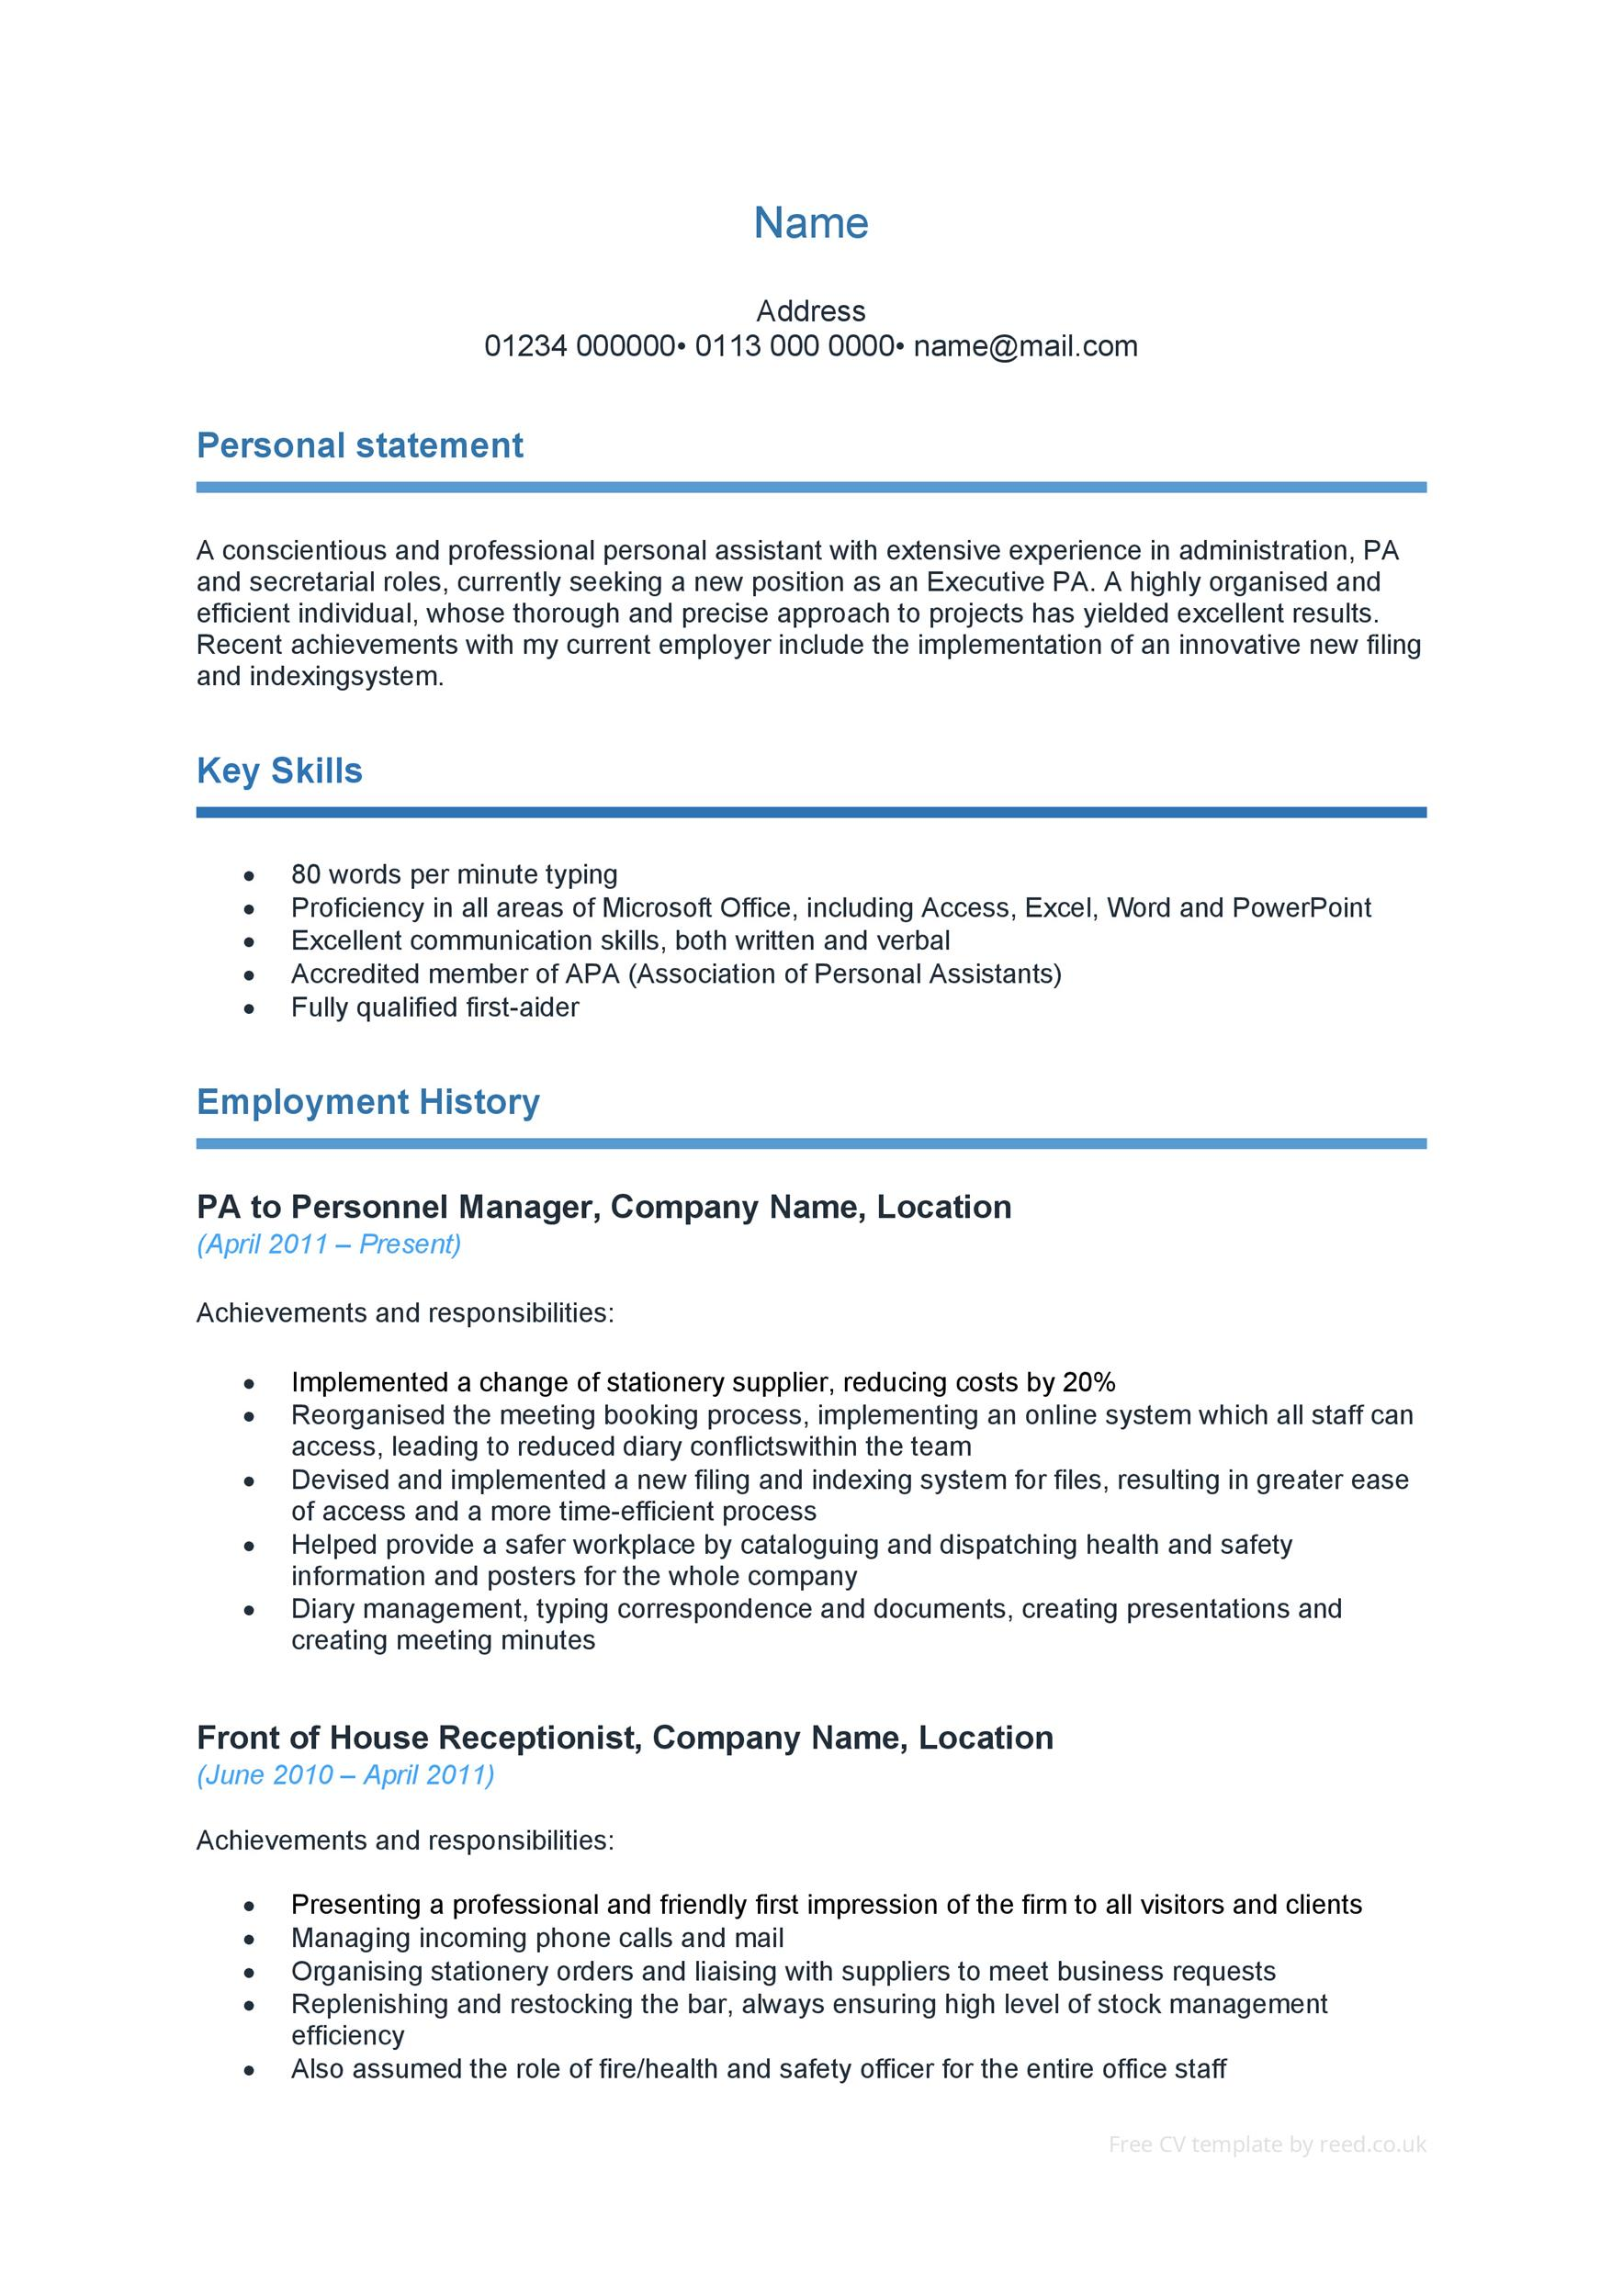 48 Great Curriculum Vitae Templates & Examples - Template Lab